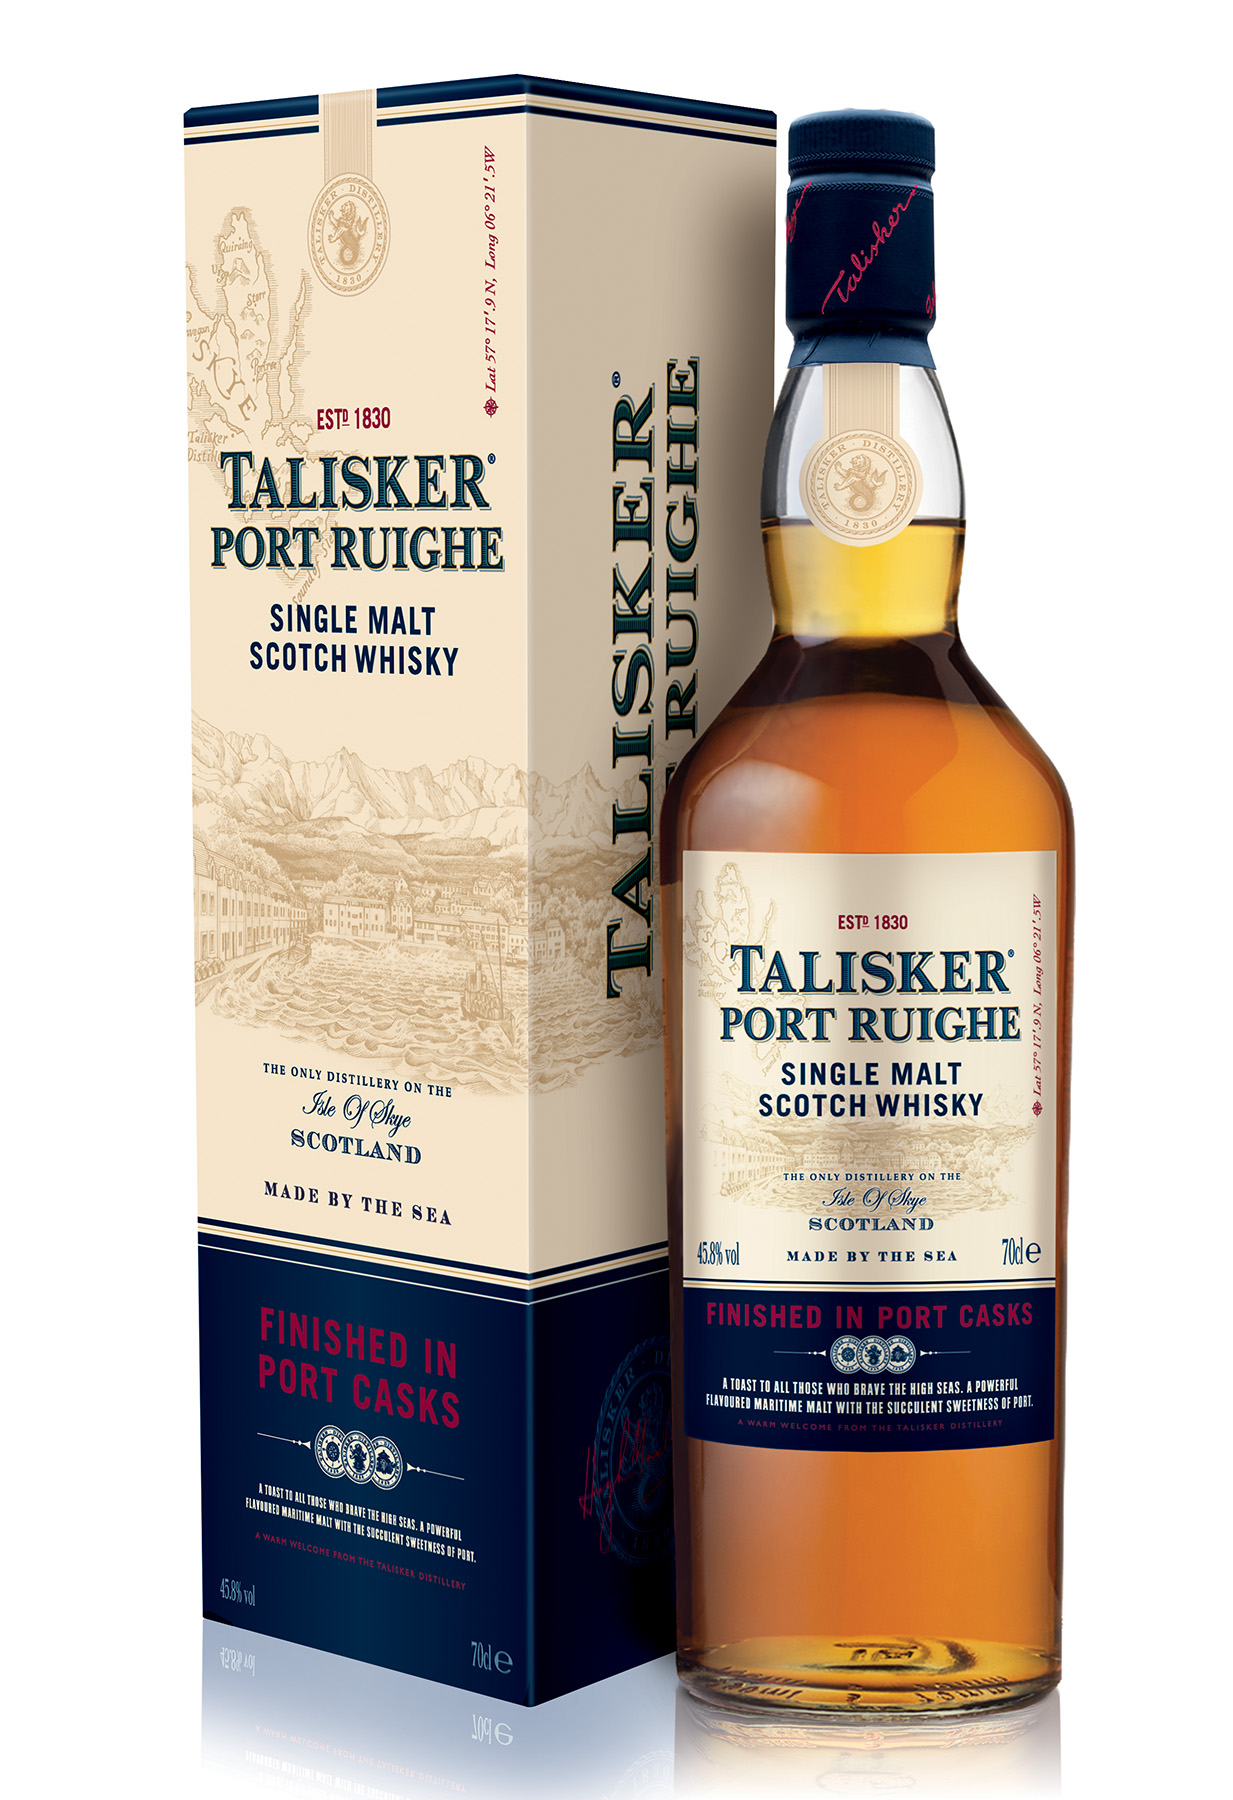 Talisker Port Ruighe whisky Diageo